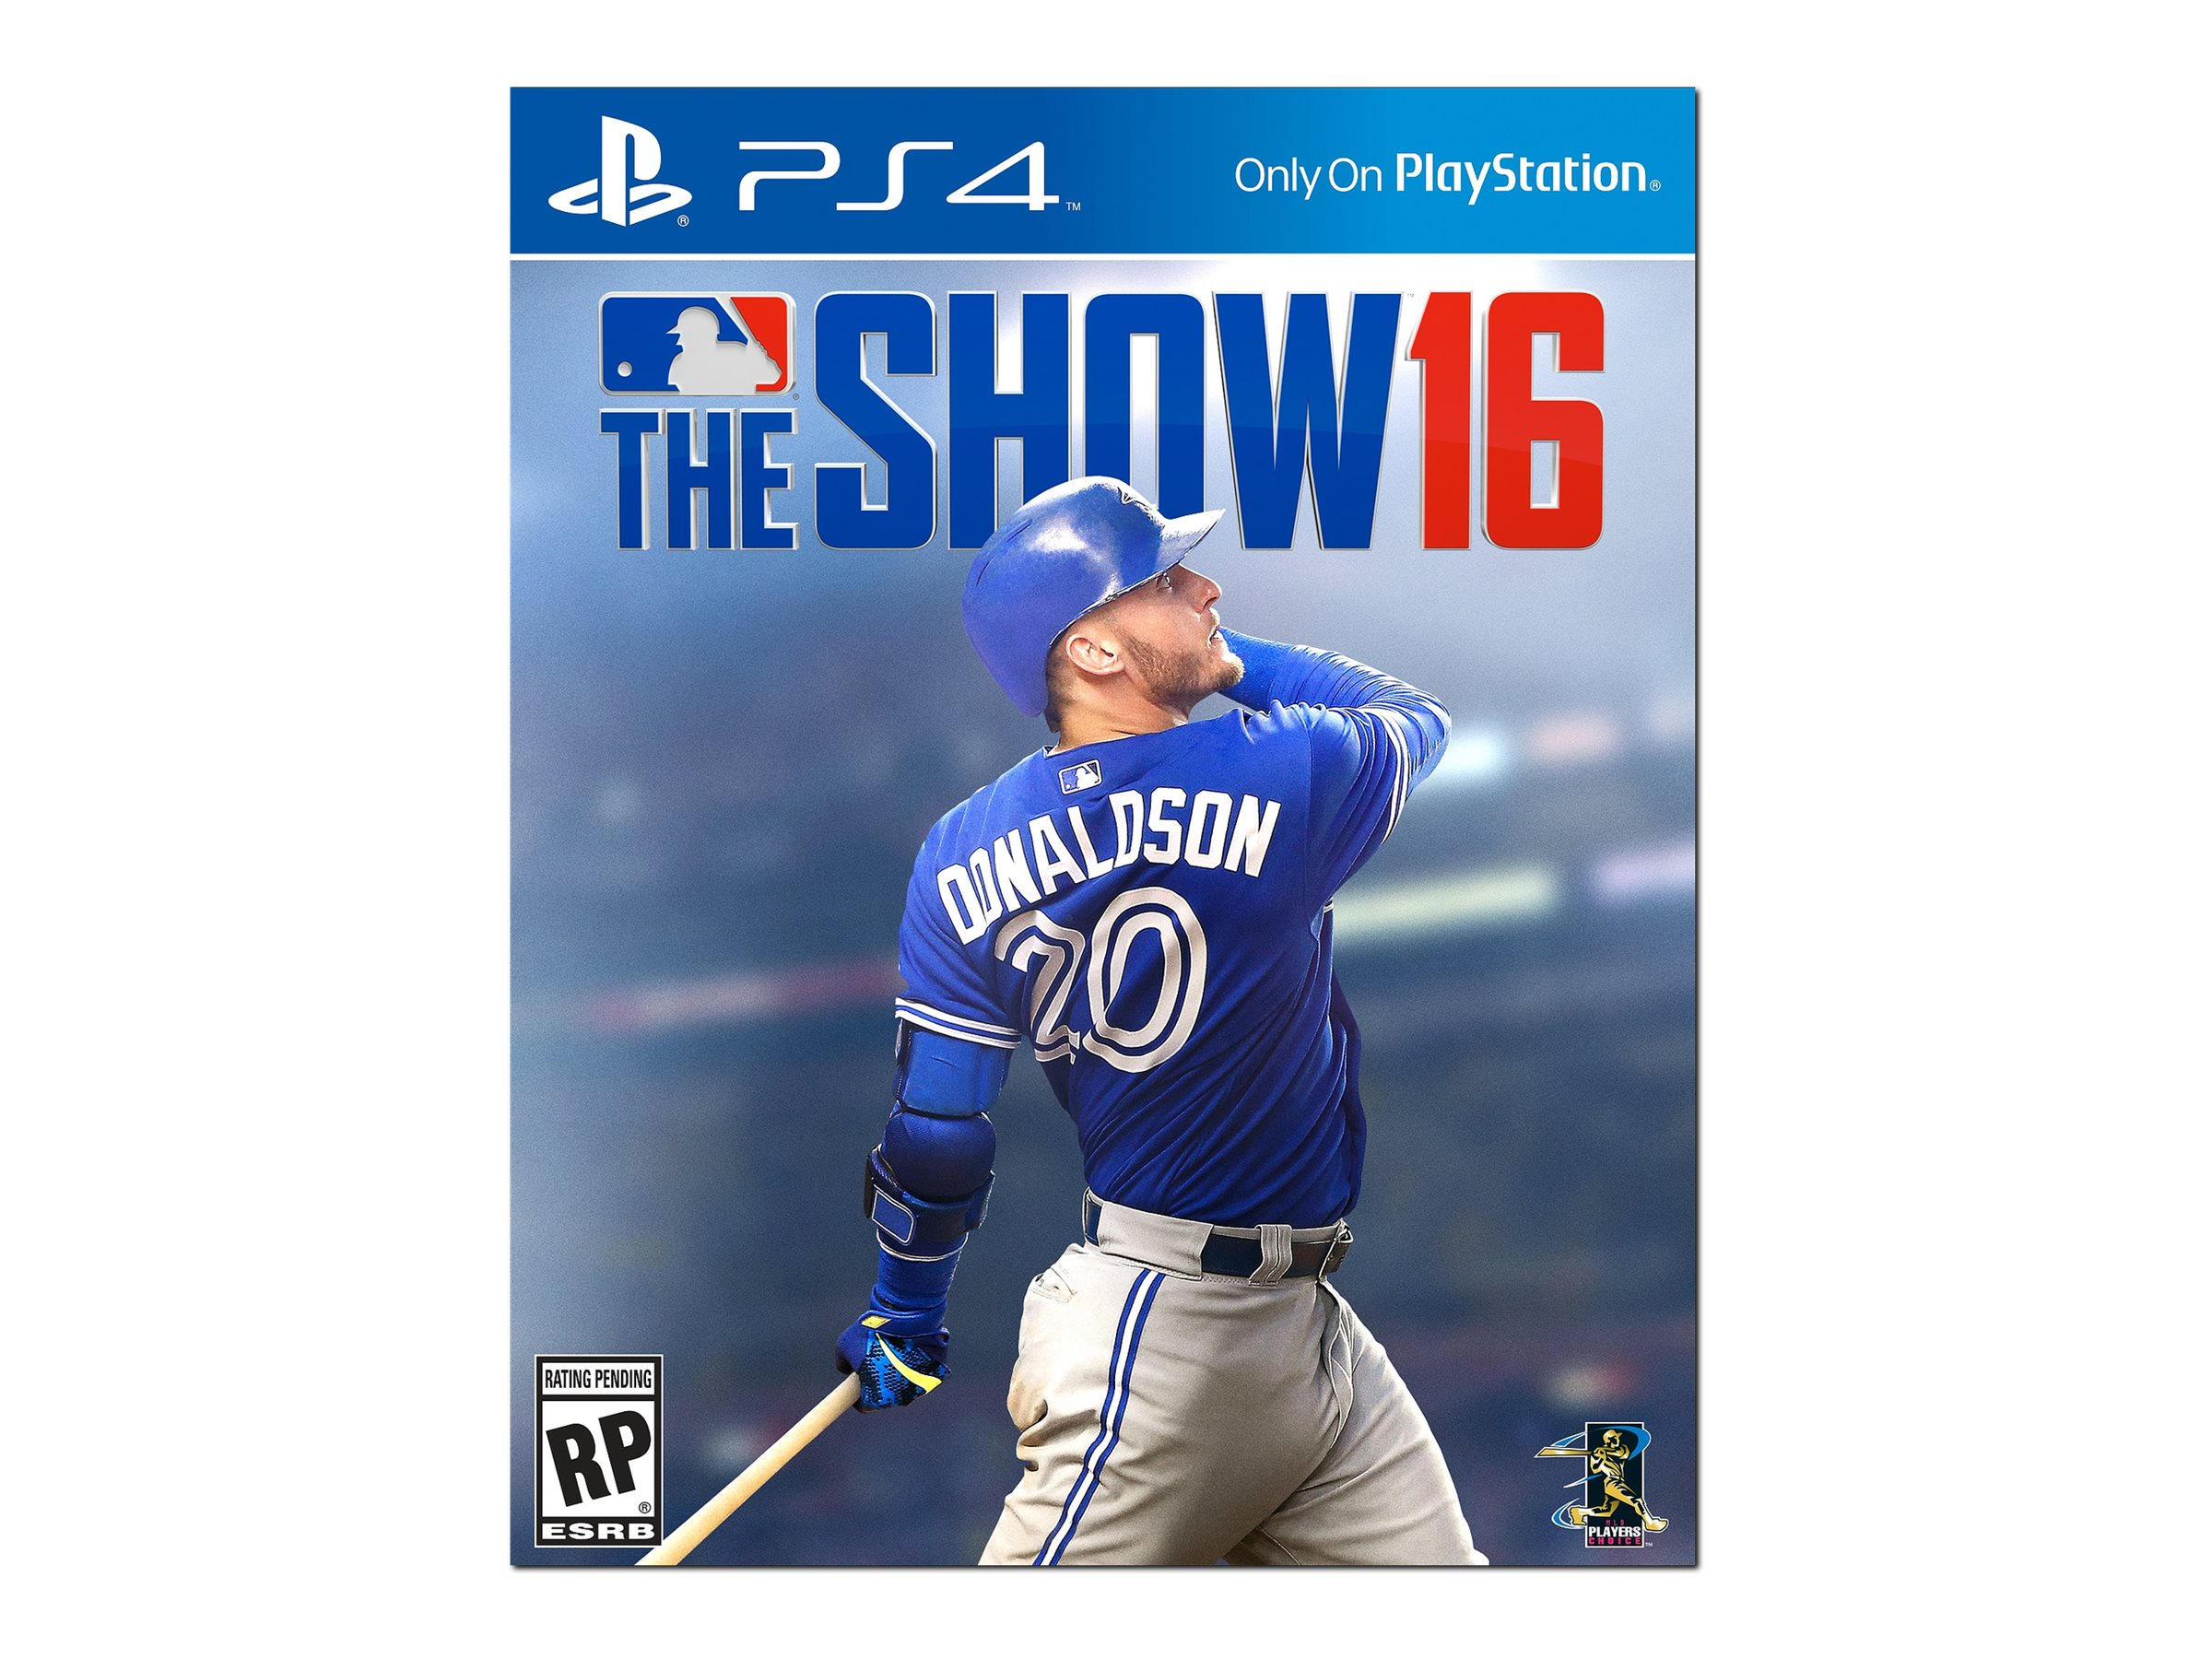 Sony PS4 MLB 16 THE SHOW, 3000929, 31474612, Software - Computer Games